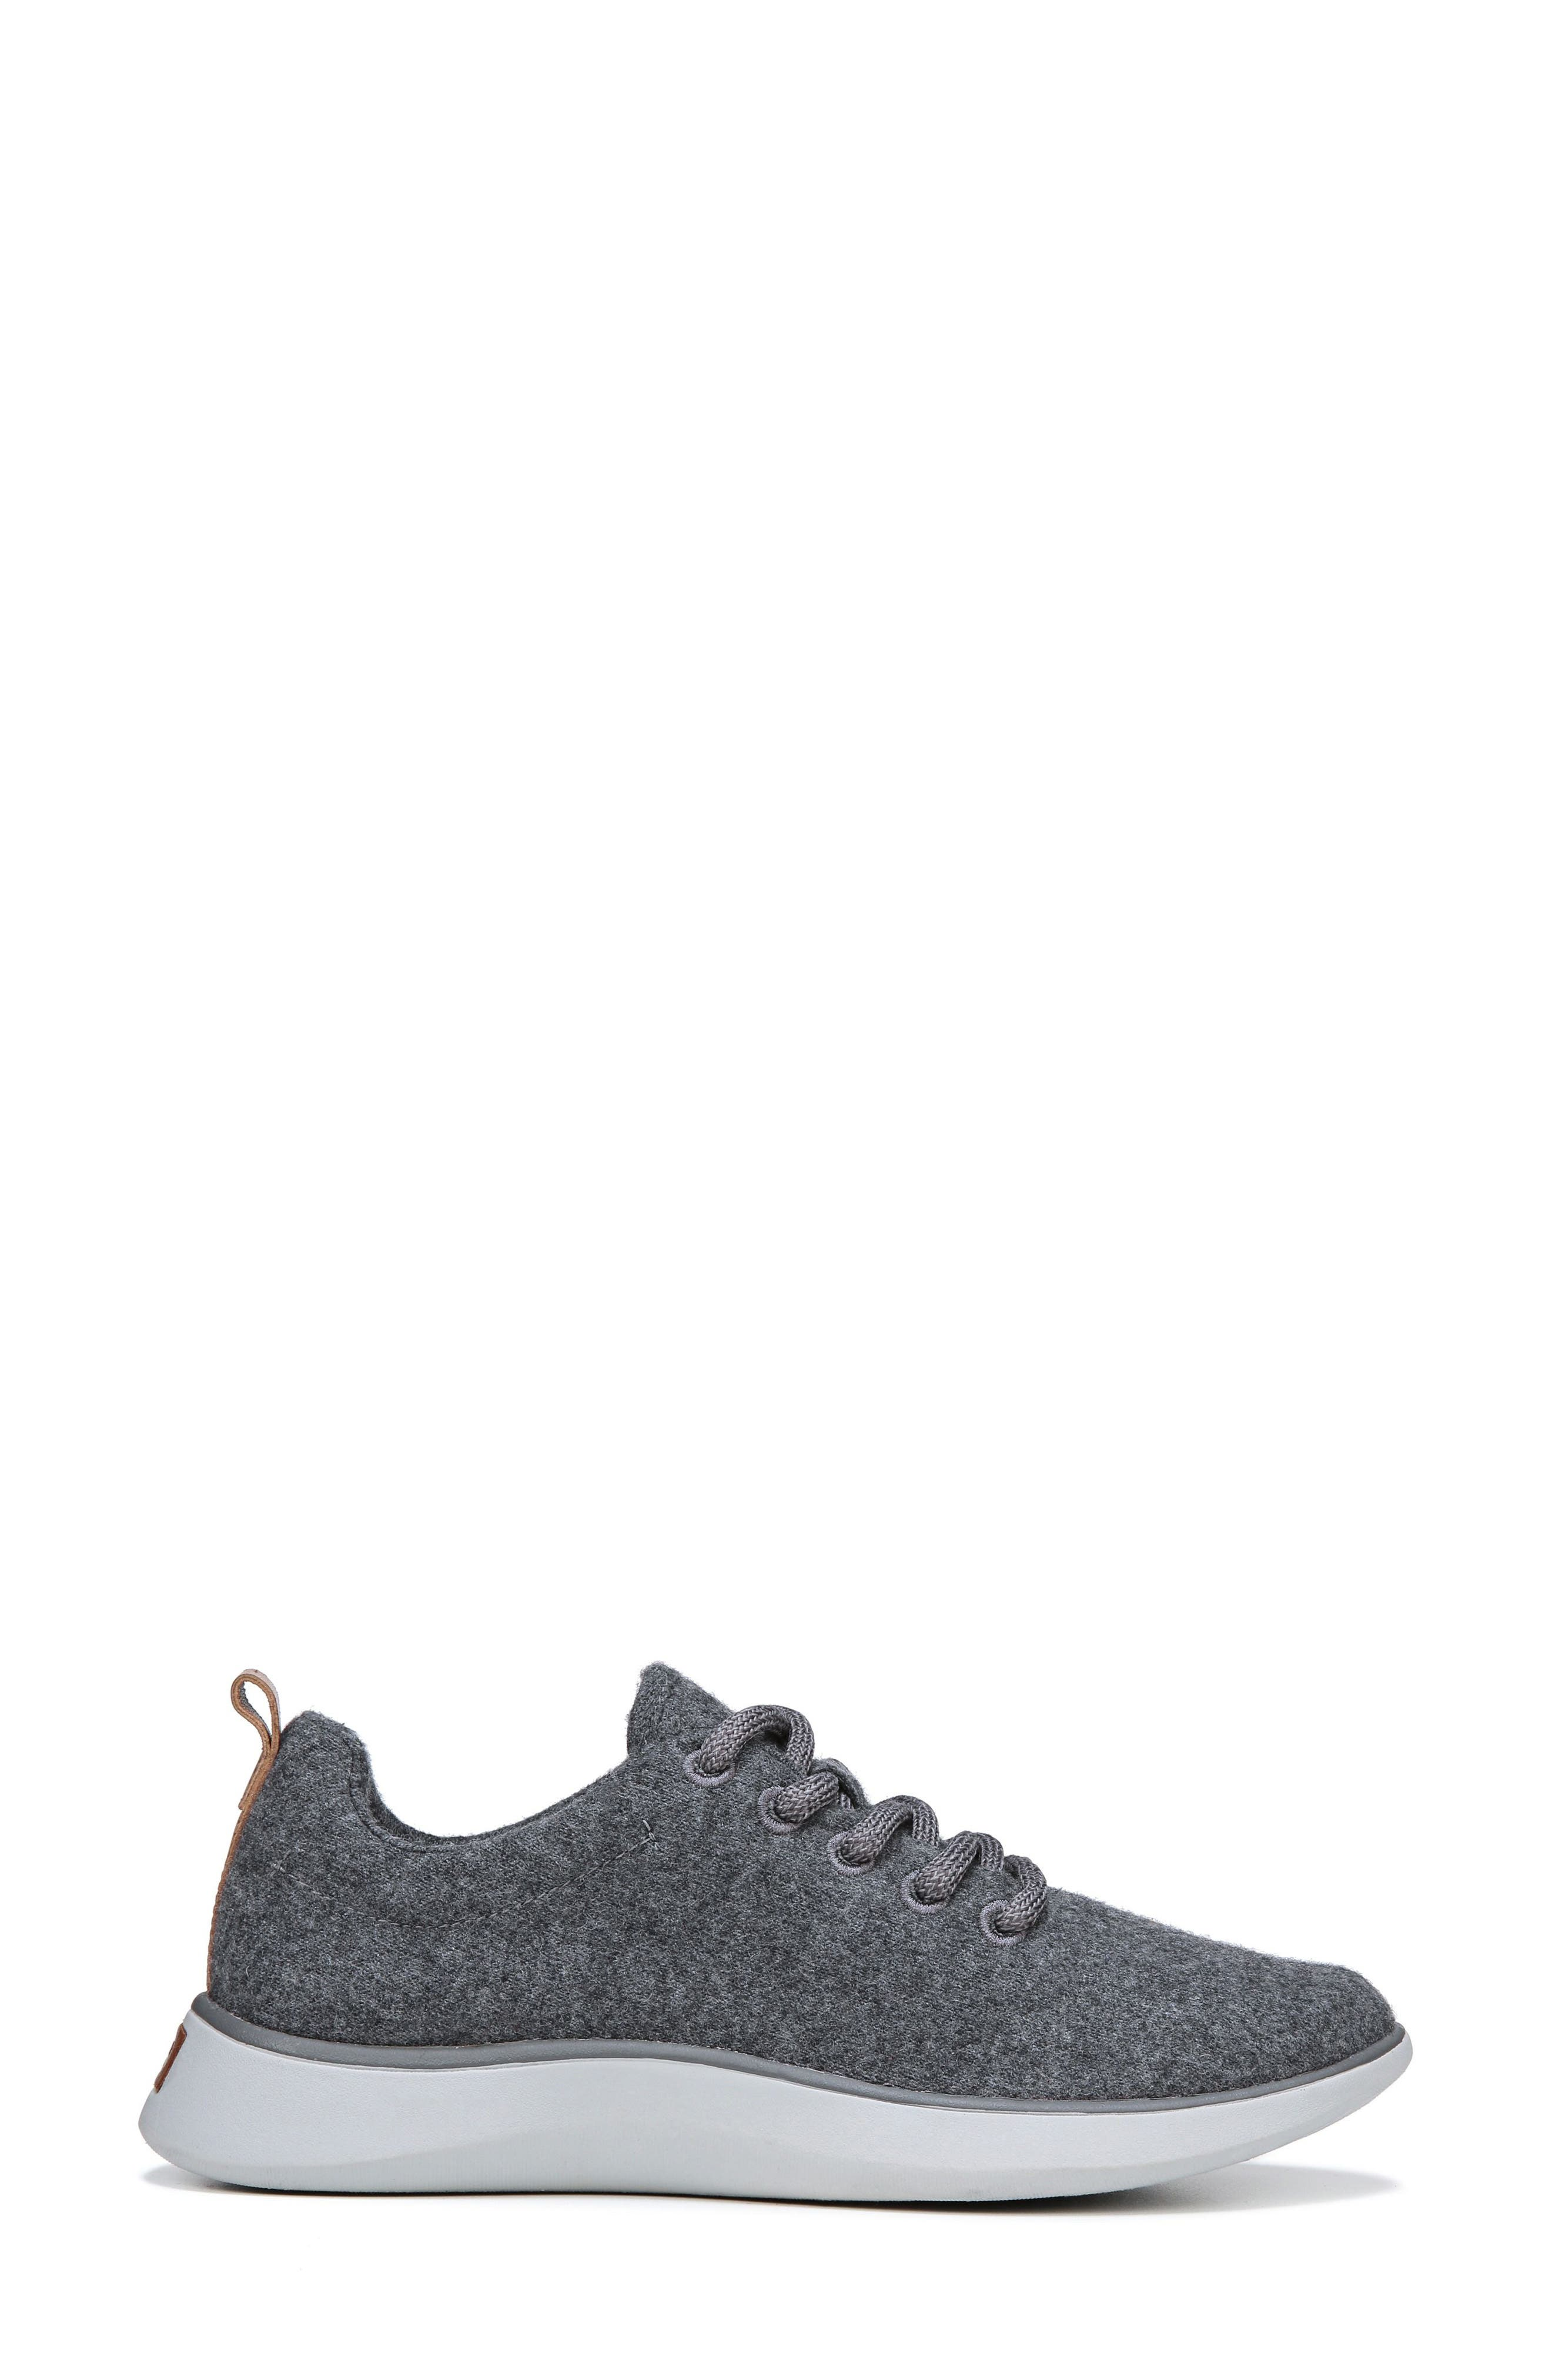 DR. SCHOLL'S, Freestep Sneaker, Alternate thumbnail 2, color, DARK GREY FABRIC